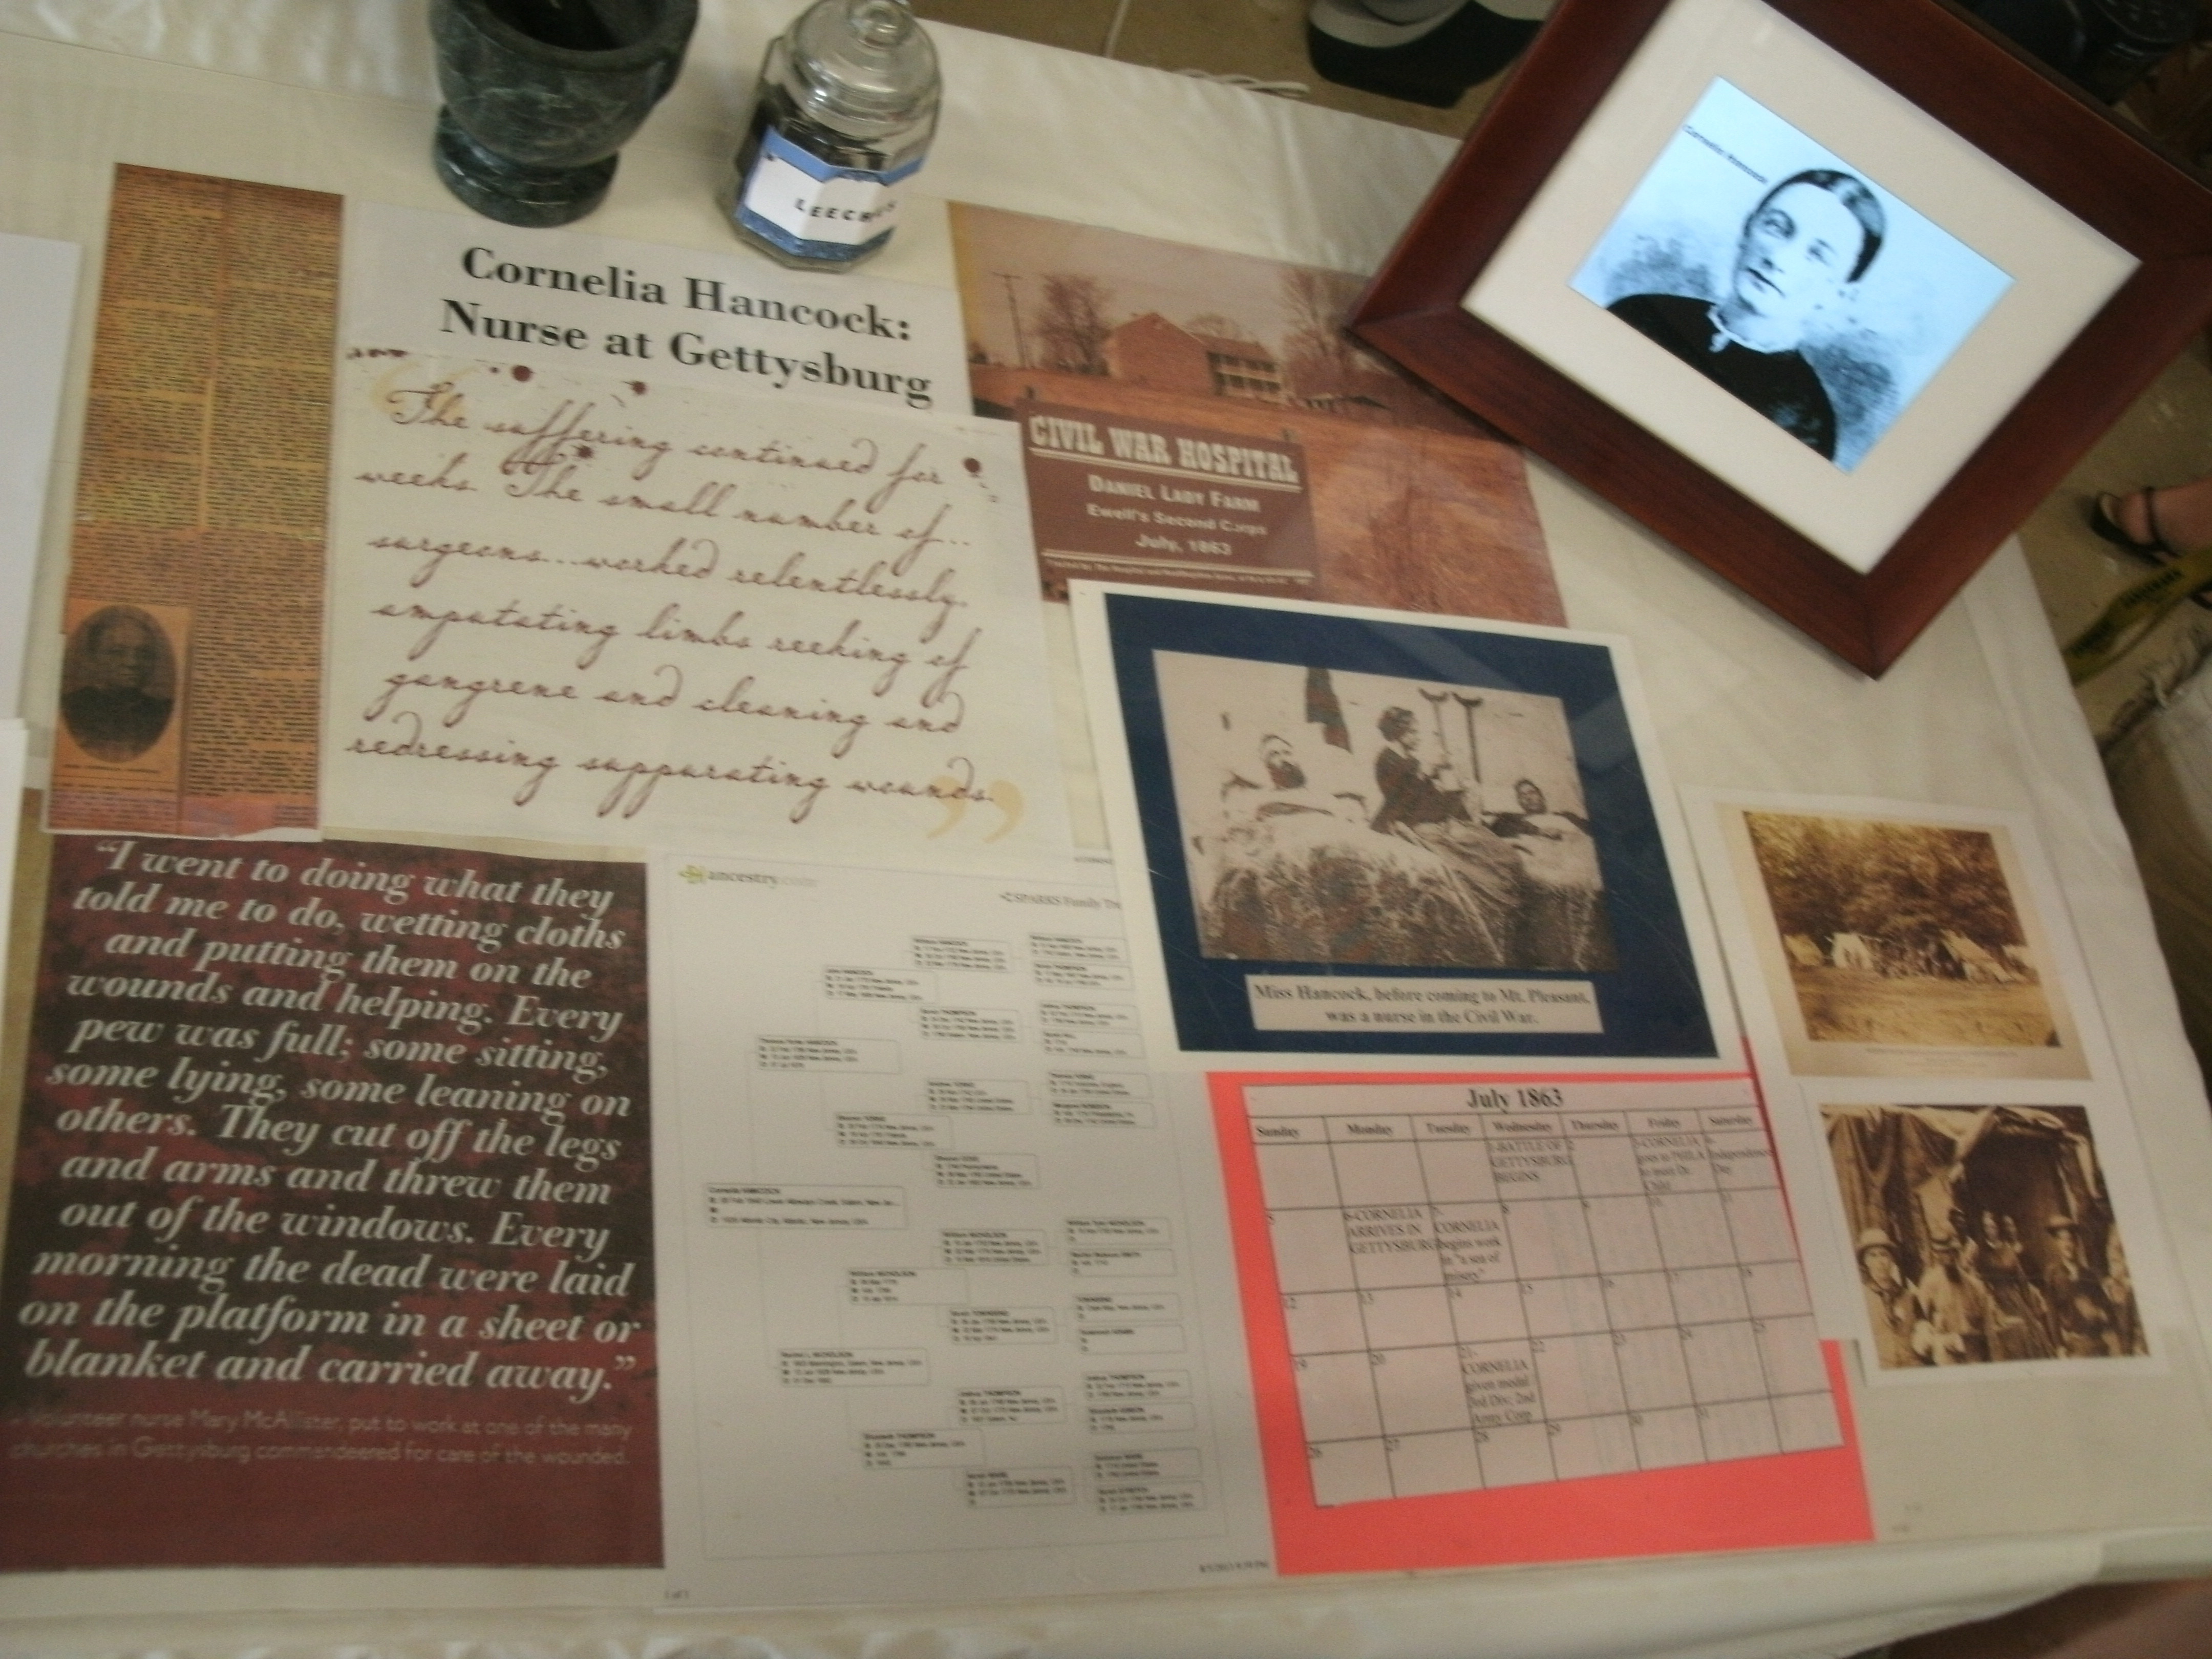 The display included information on the life of Cornelia Hancock, a Salem County native.